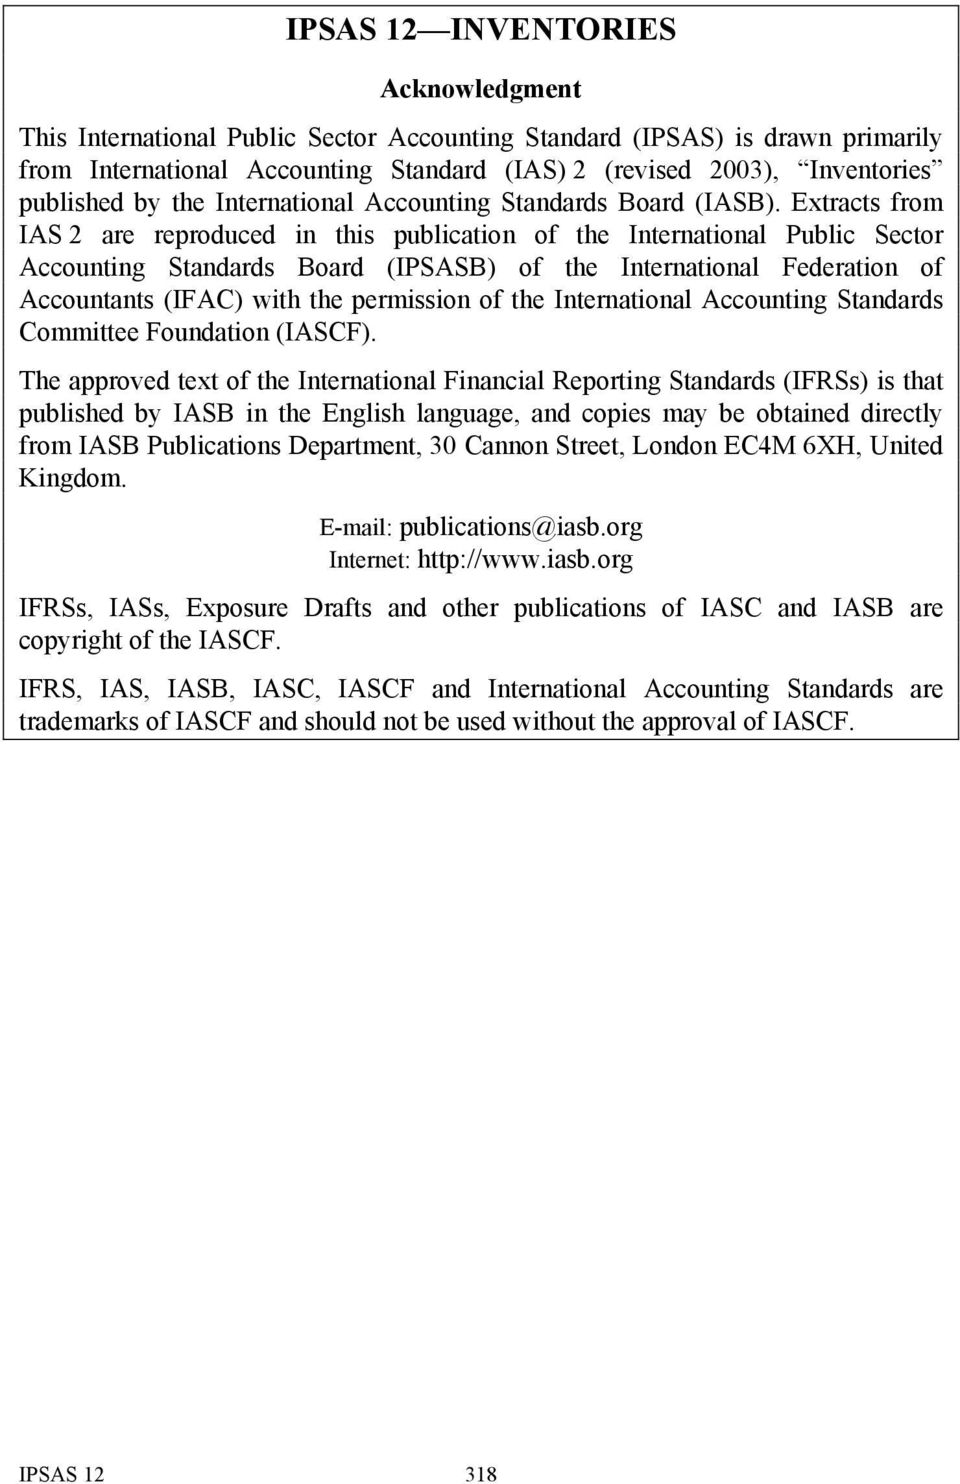 Extracts from IAS 2 are reproduced in this publication of the International Public Sector Accounting Standards Board (IPSASB) of the International Federation of Accountants (IFAC) with the permission